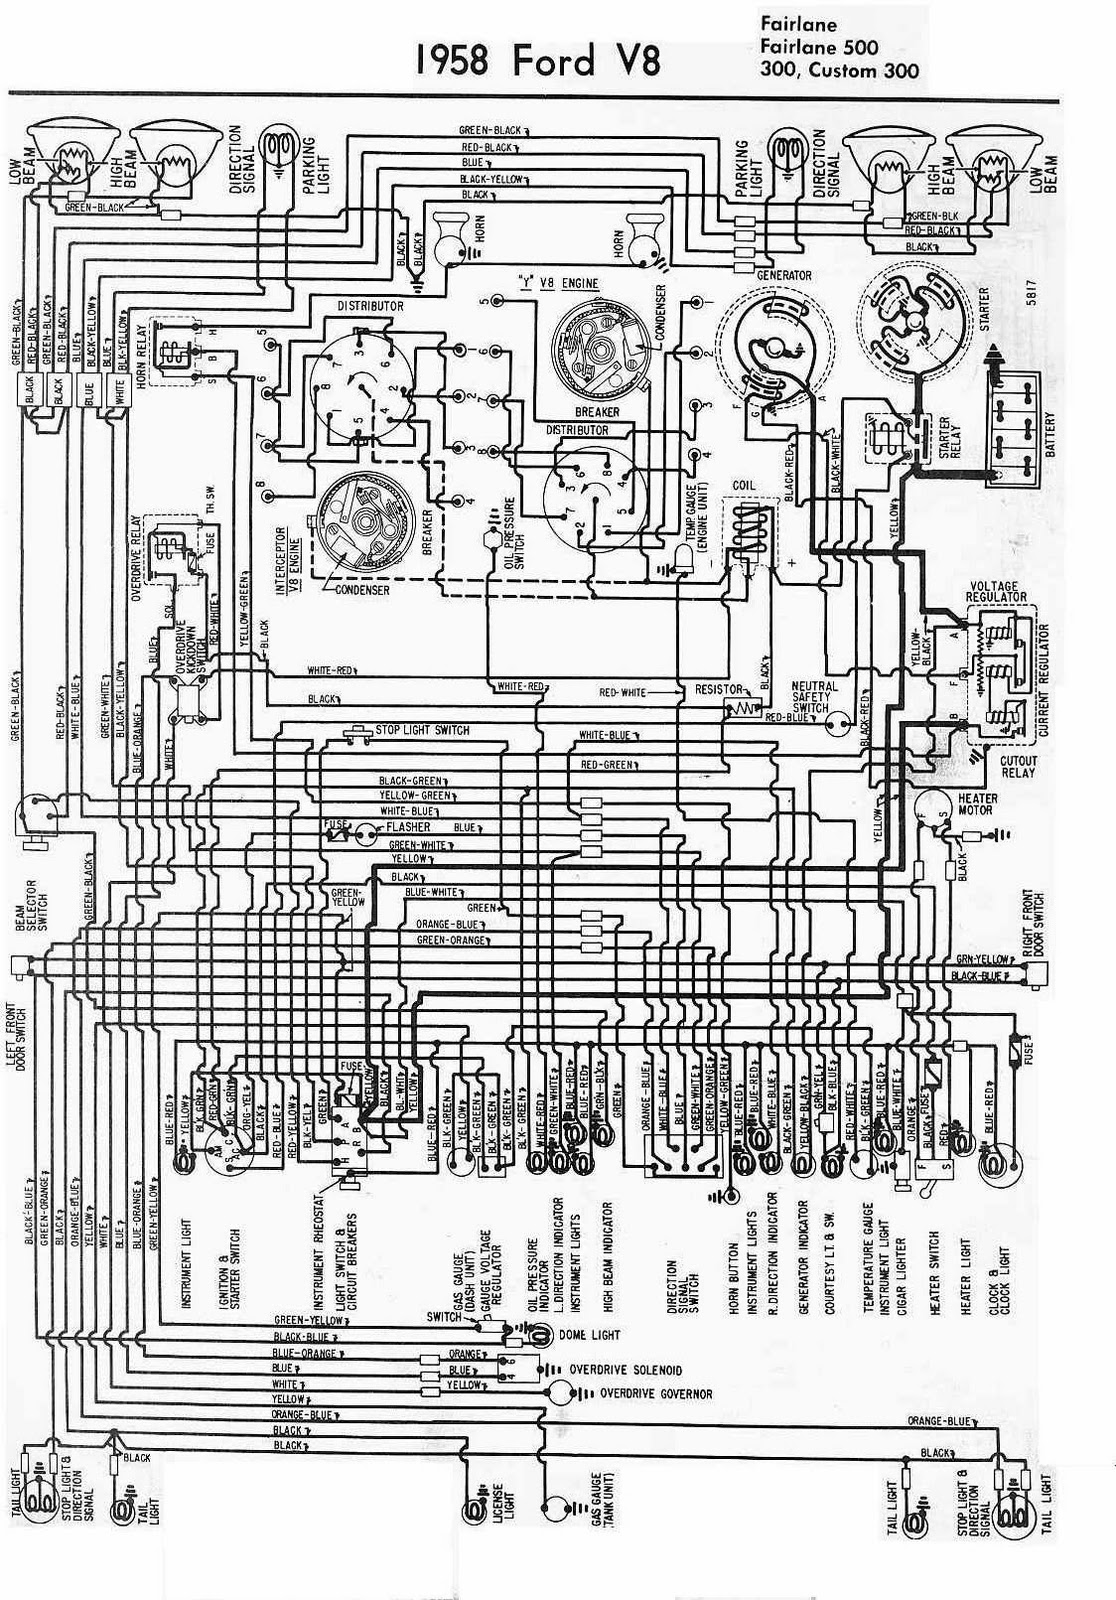 1970 F100 Ignition Wire Diagram For Battery To From Trusted Wiring Electrical 1958 Ford V8 All About Diagrams Rh Diagramonwiring Blogspot Com